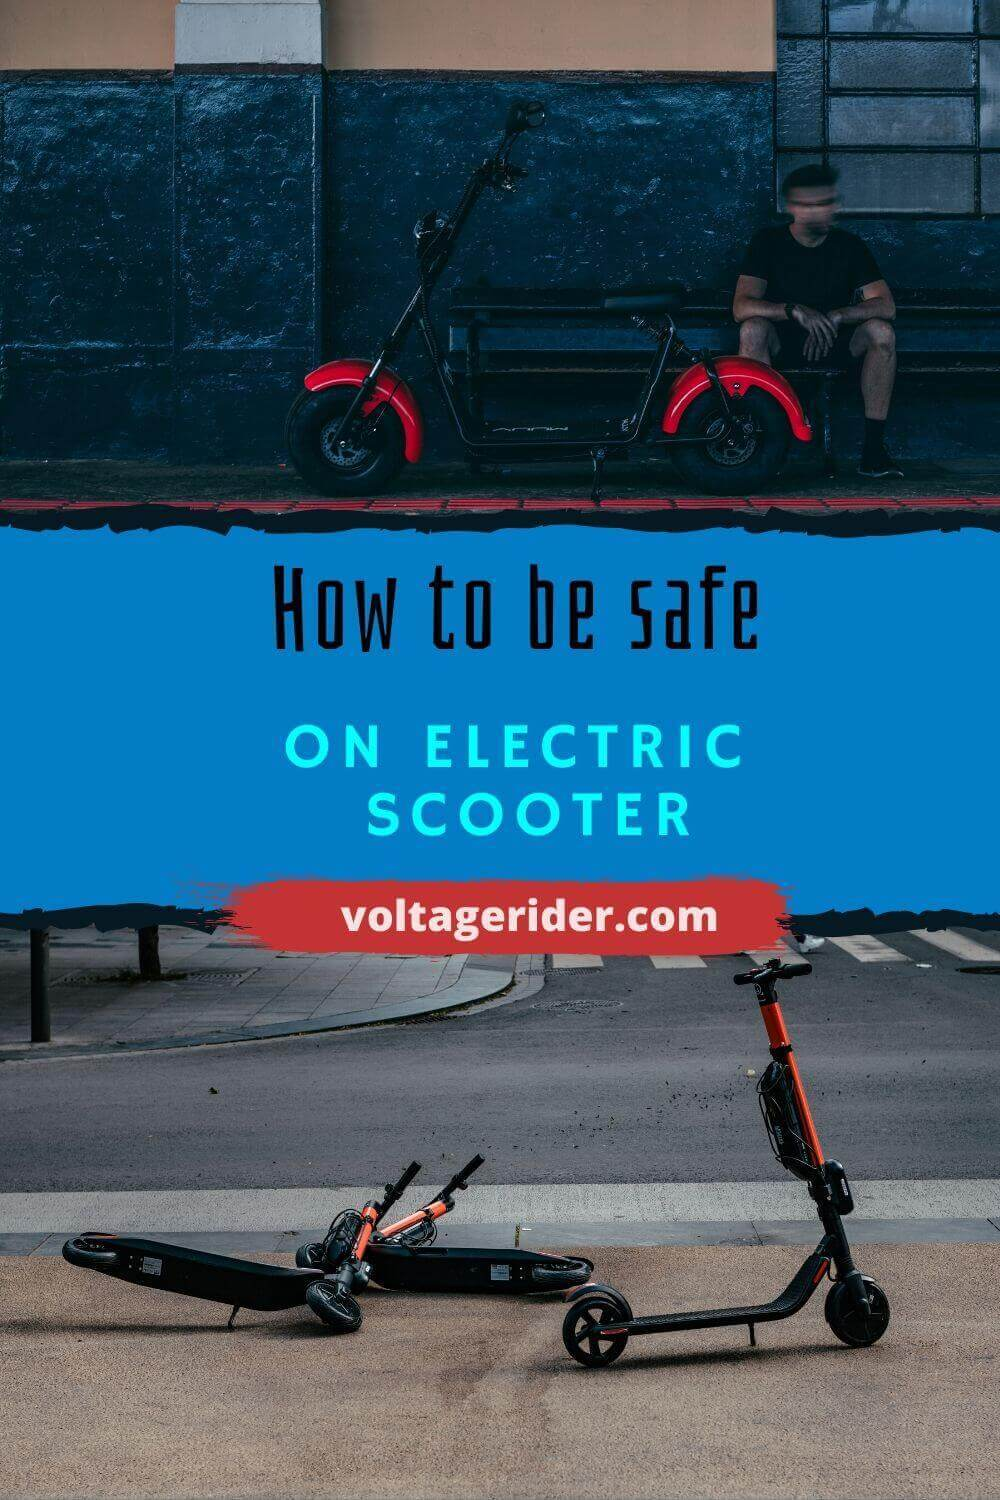 Pin about electric scooter safety from Voltage Rider pinterest account